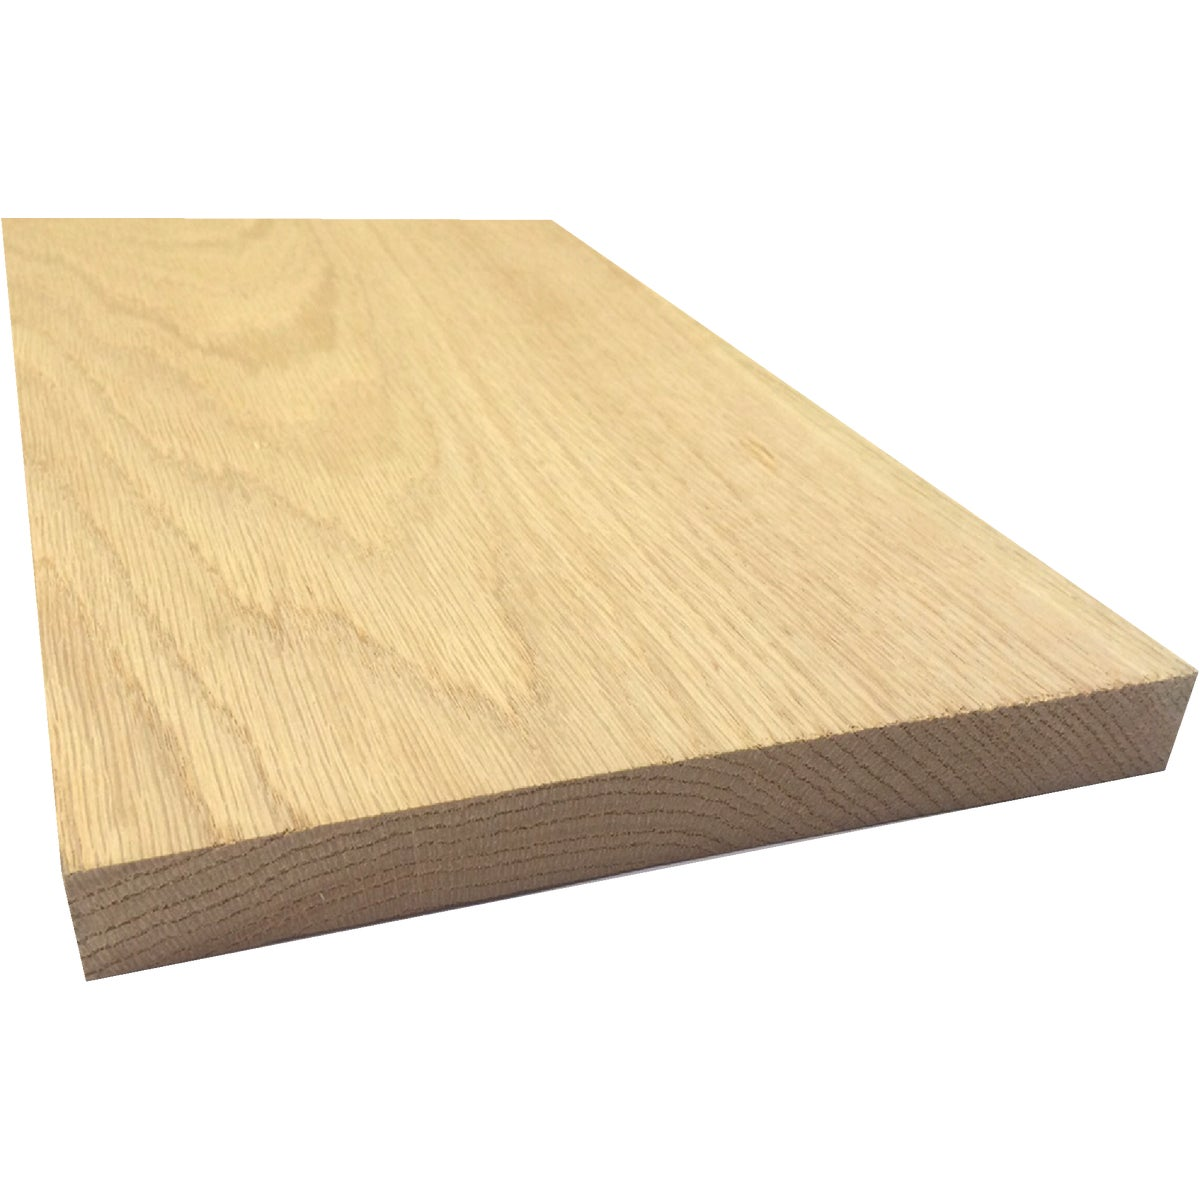 "1X8""X6' OAK BOARD - PB19542 by Waddell Mfg Company"